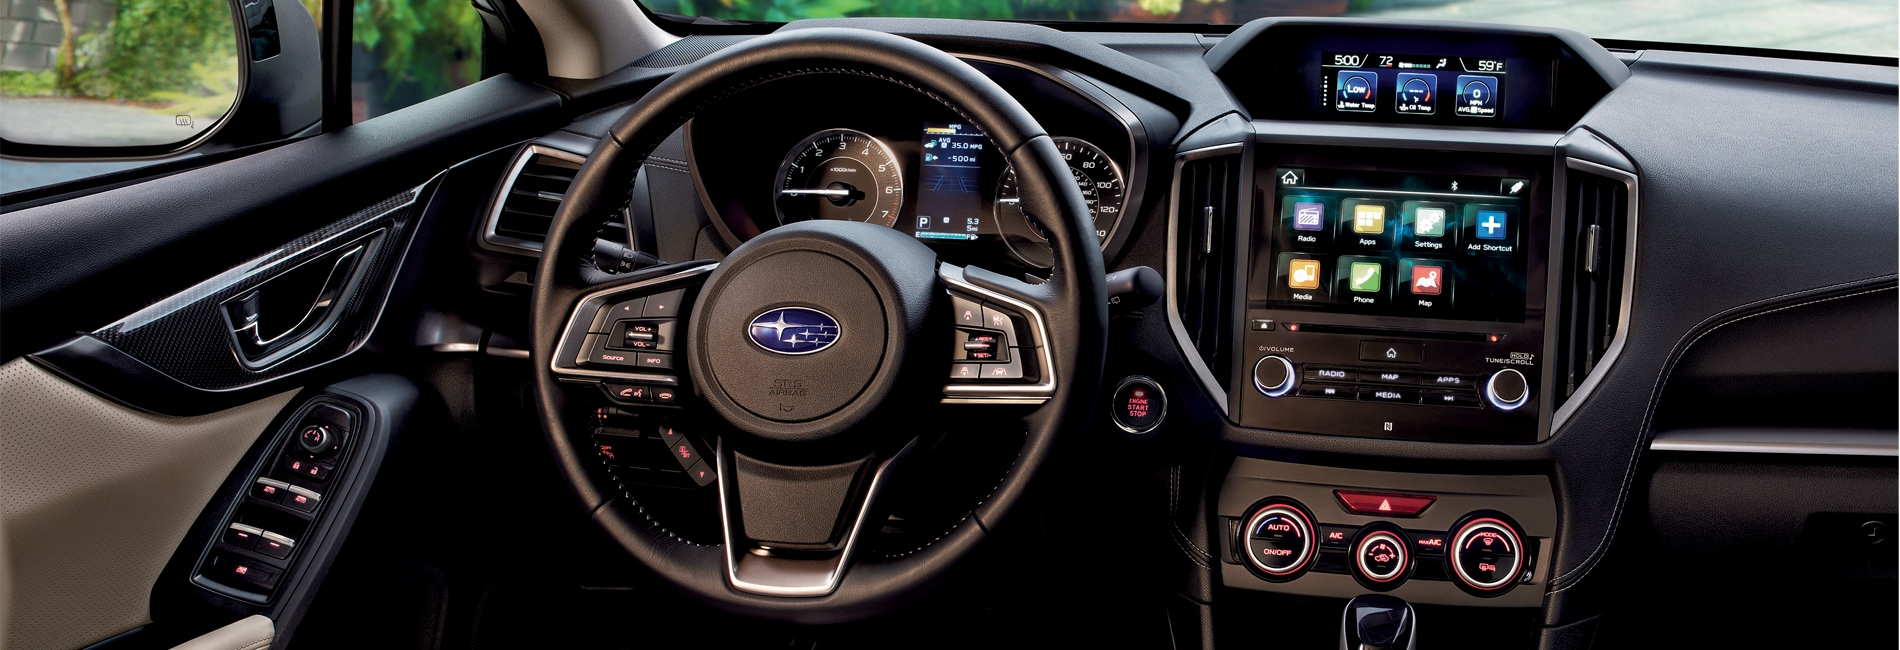 Subaru Impreza Interior Vehicle Features